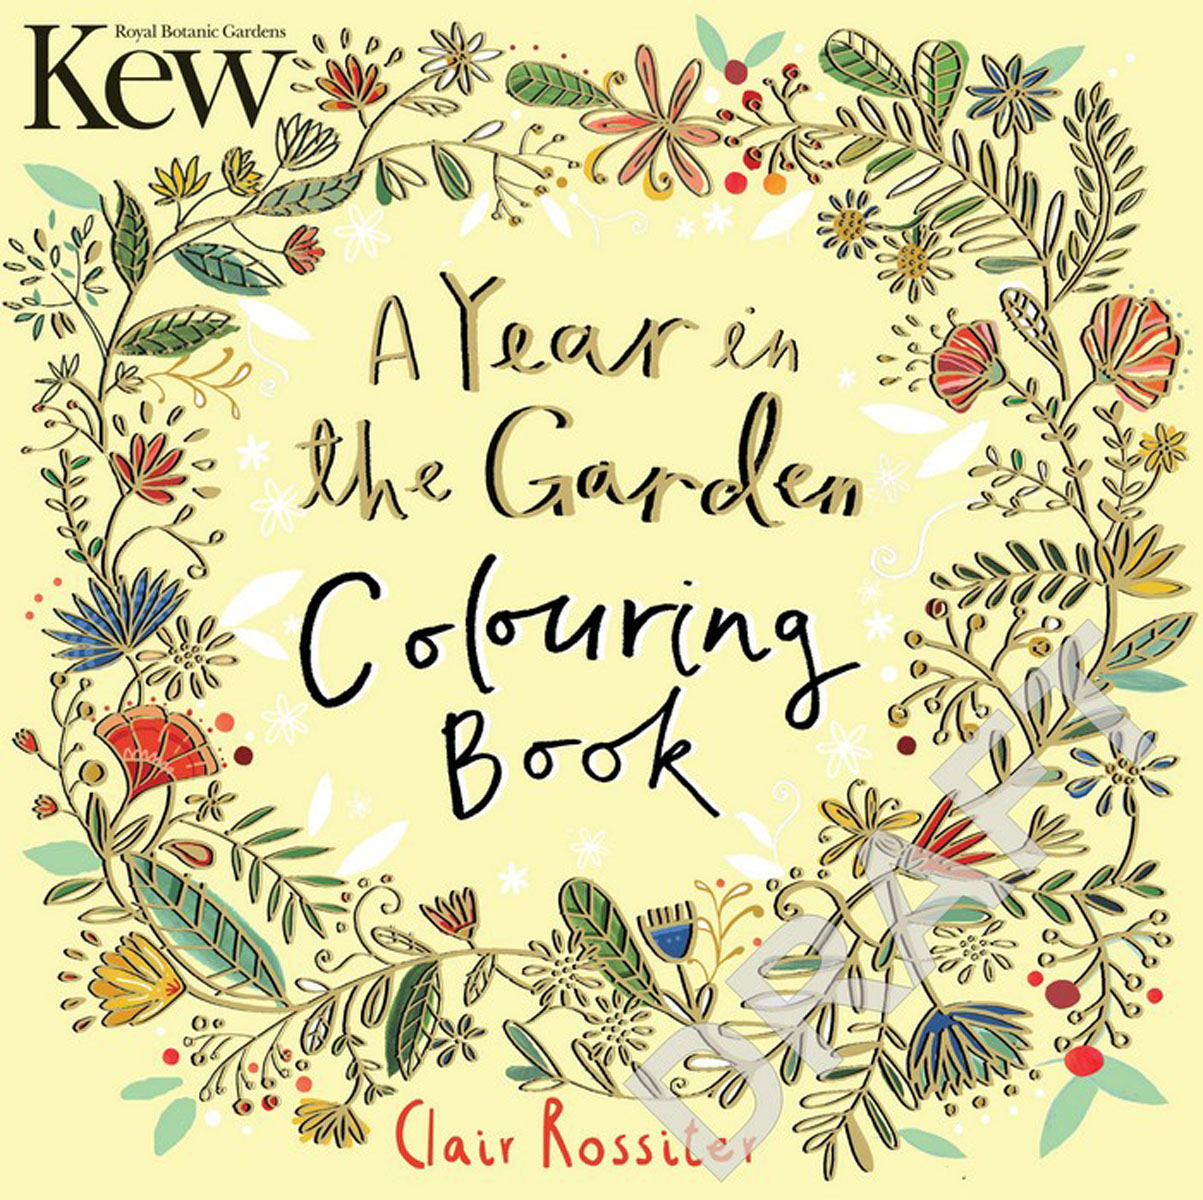 Kew A Year in the Garden Colouring Book die hard the official colouring book